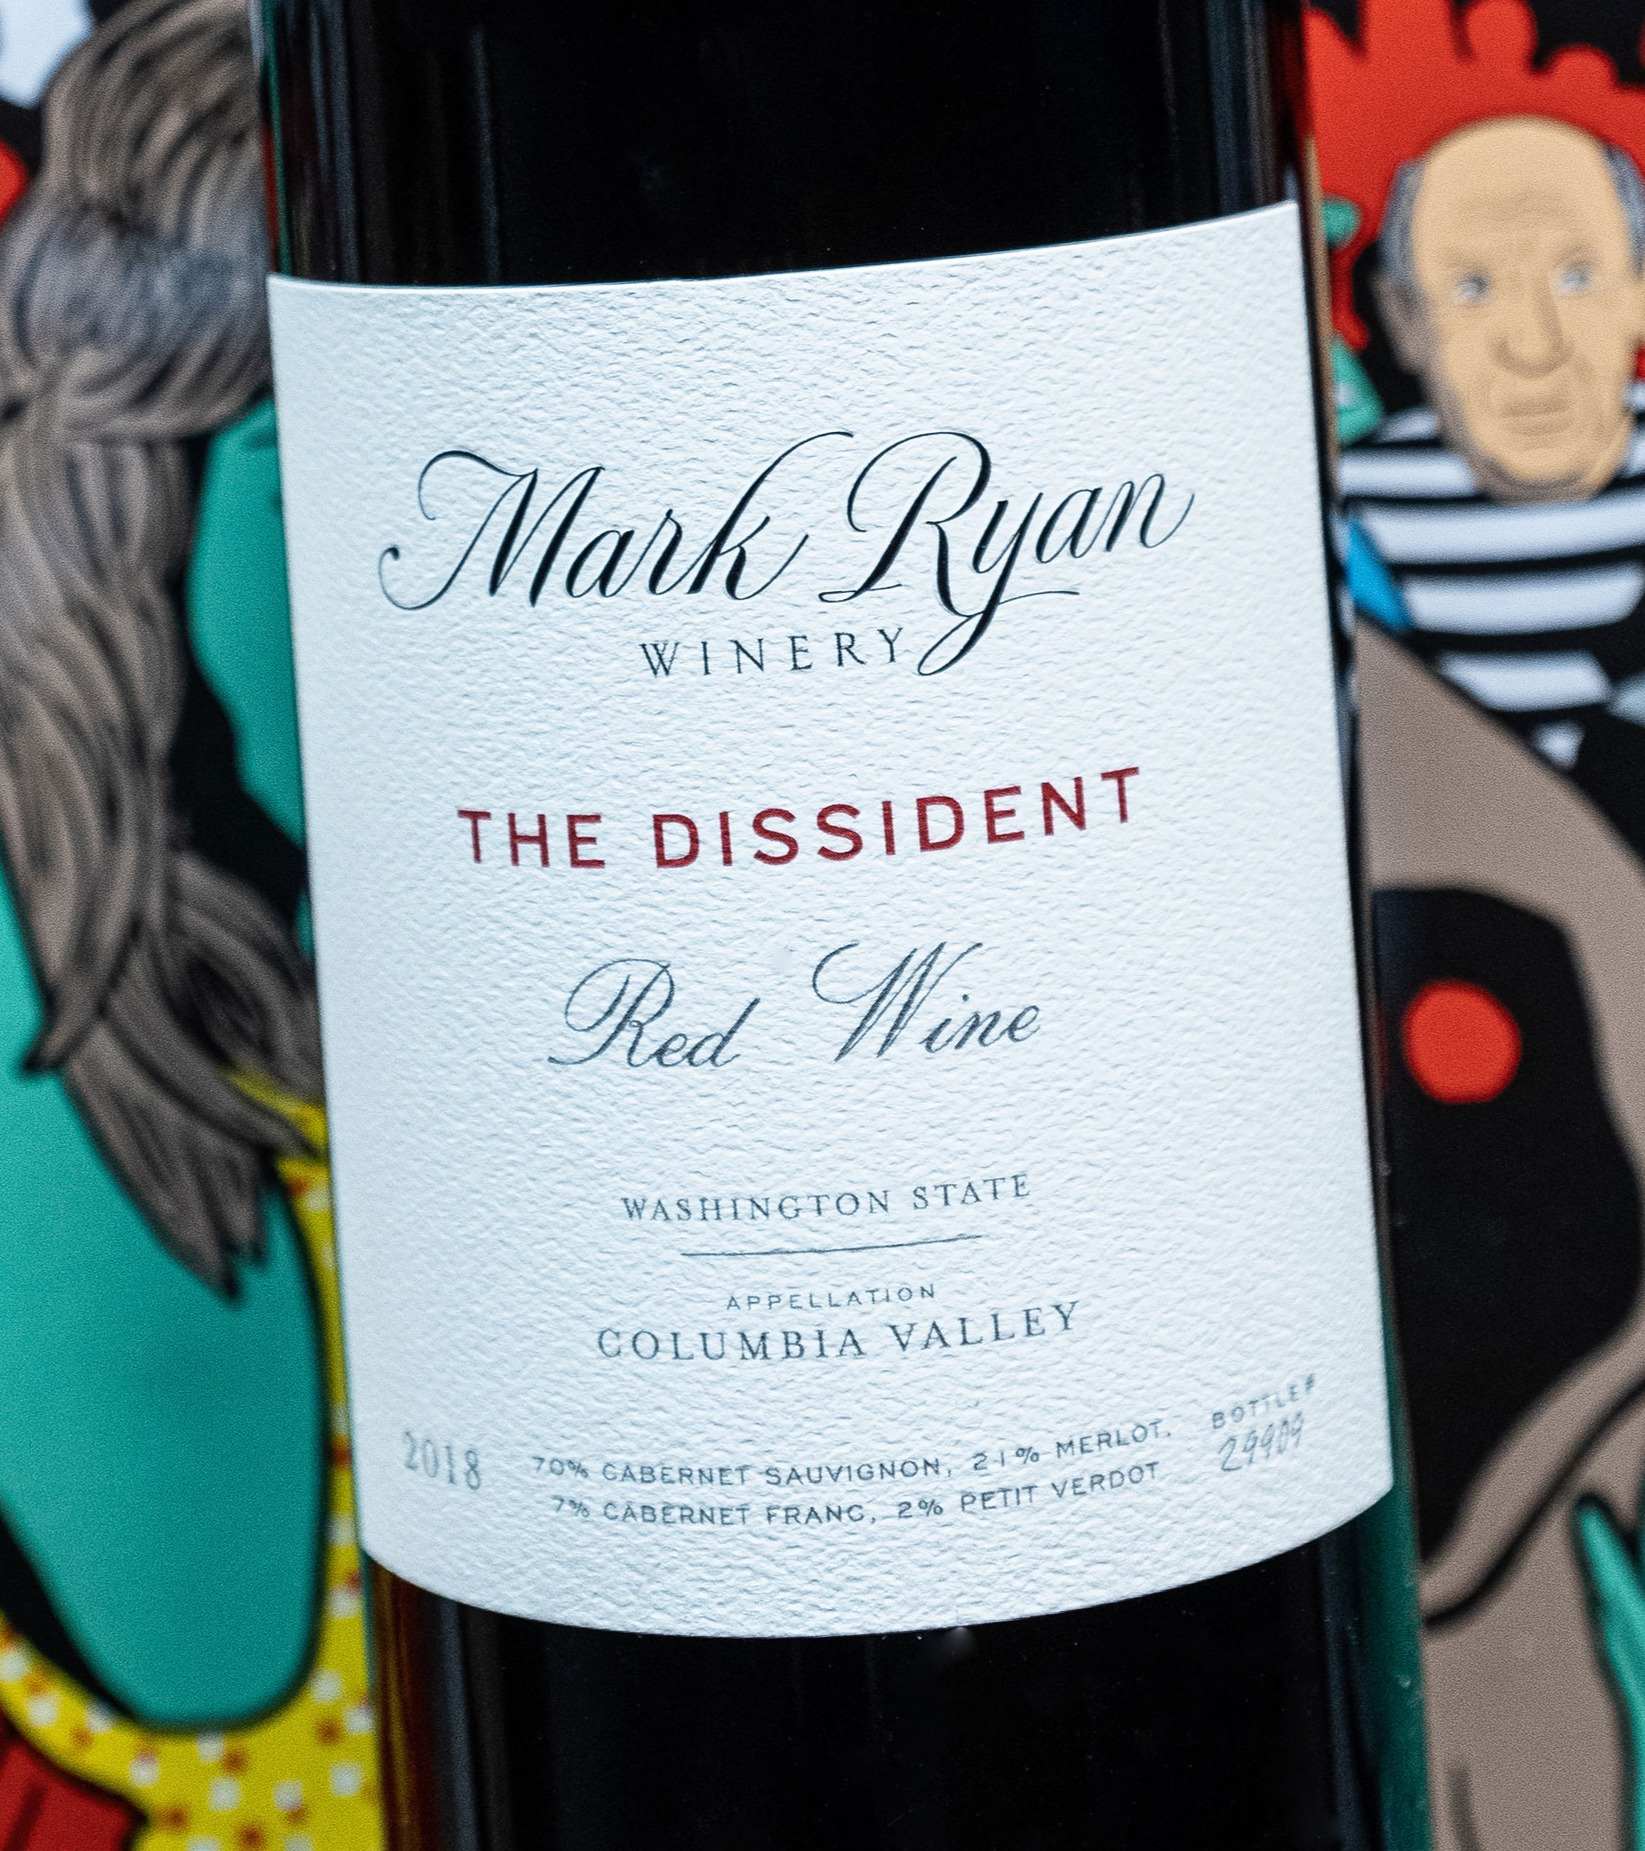 Bottle of The Dissident